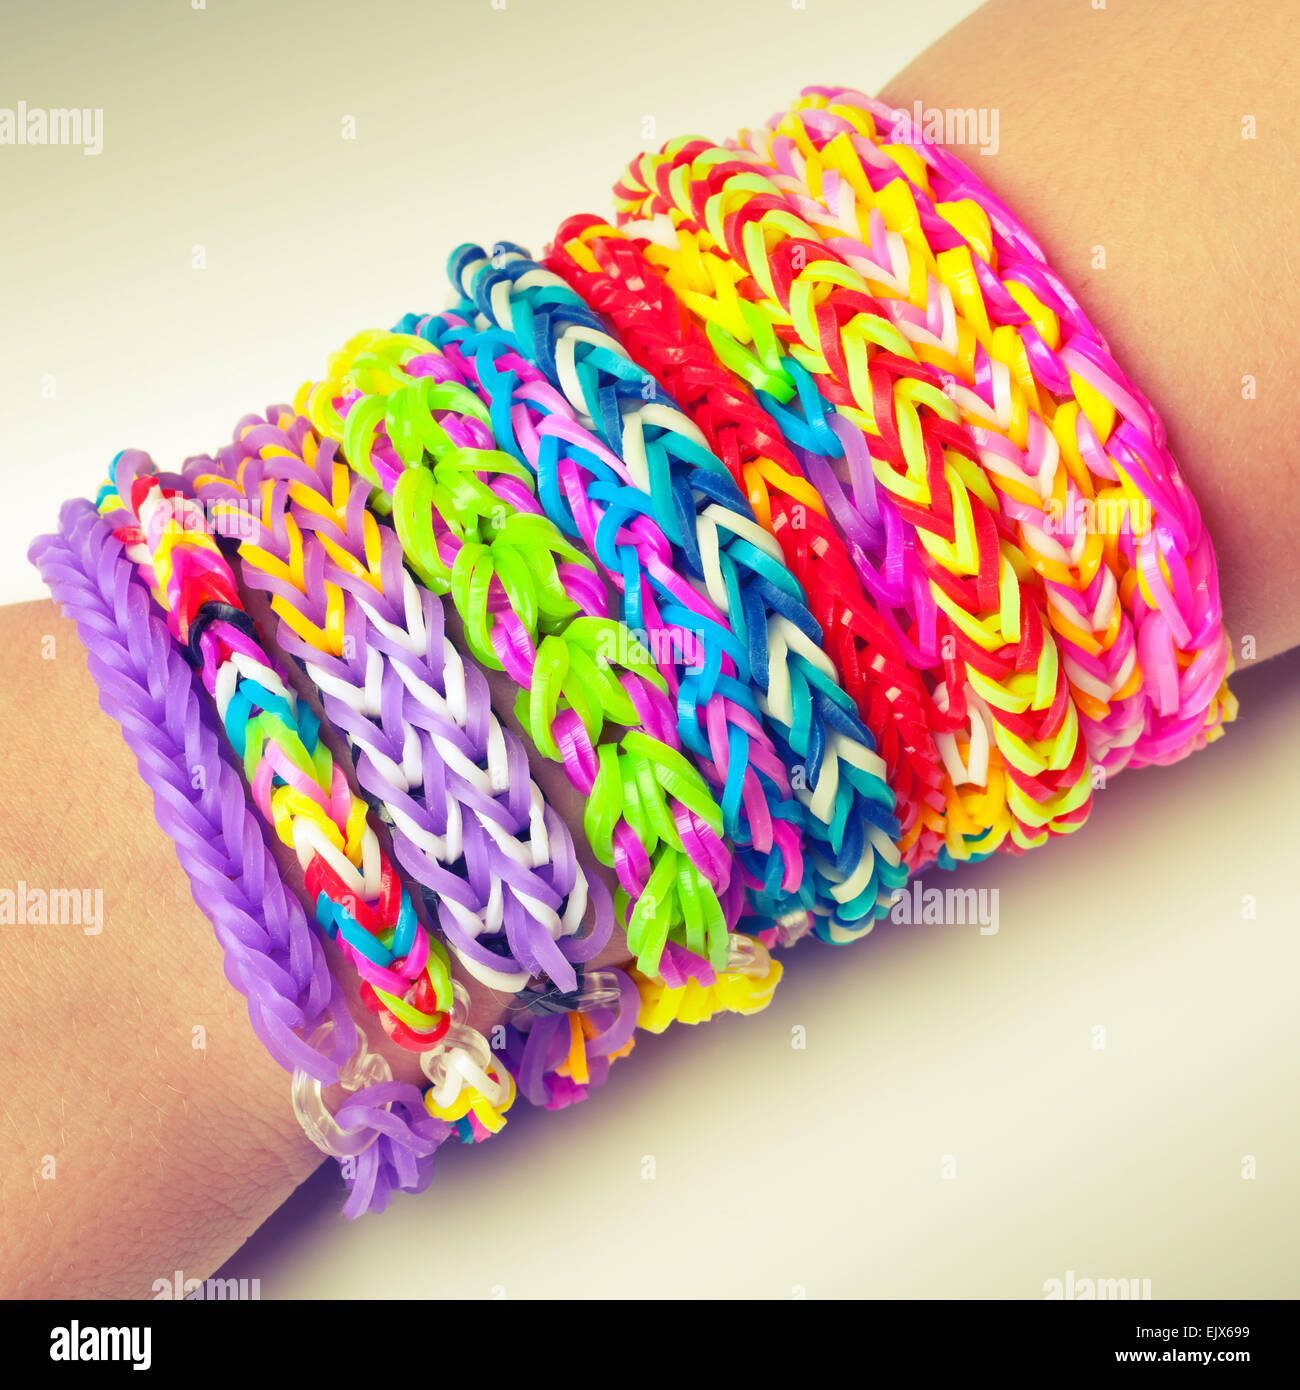 colorful rubber rainbow loom band bracelets on wrist trendy kids stock photo 80480997 alamy. Black Bedroom Furniture Sets. Home Design Ideas